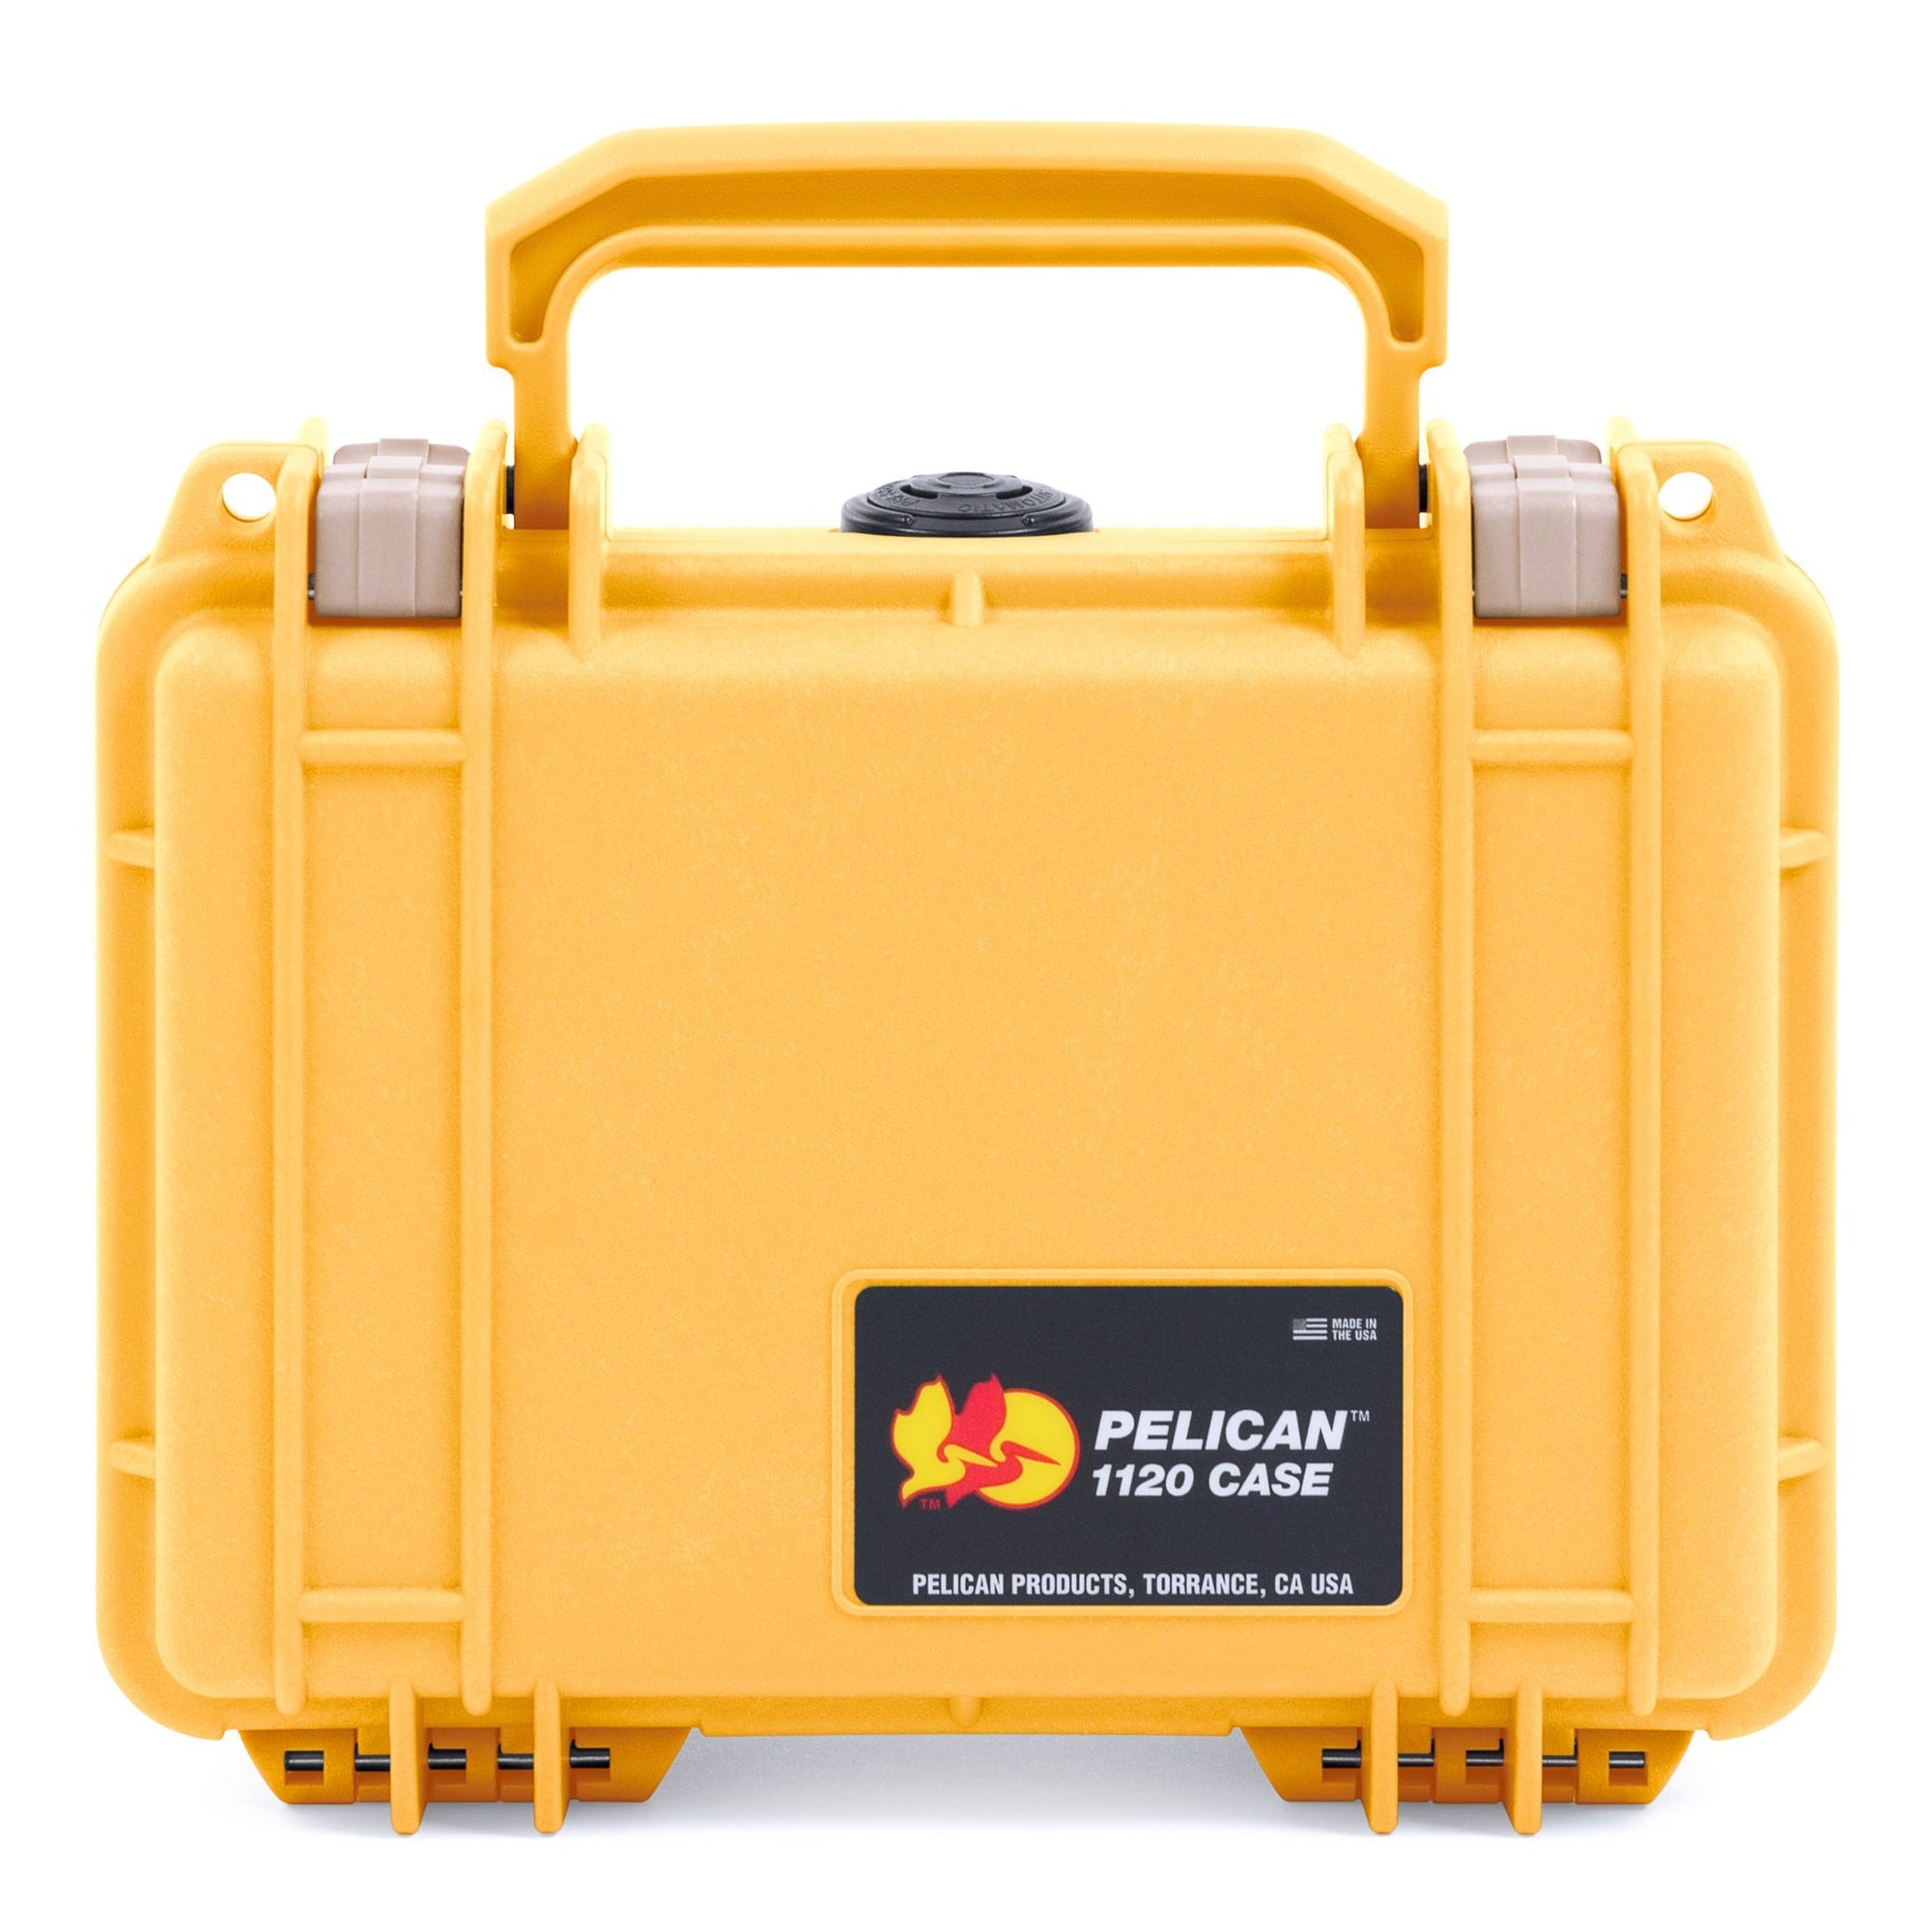 Pelican 1120 Case, Yellow with Desert Tan Latches - Pelican Color Case